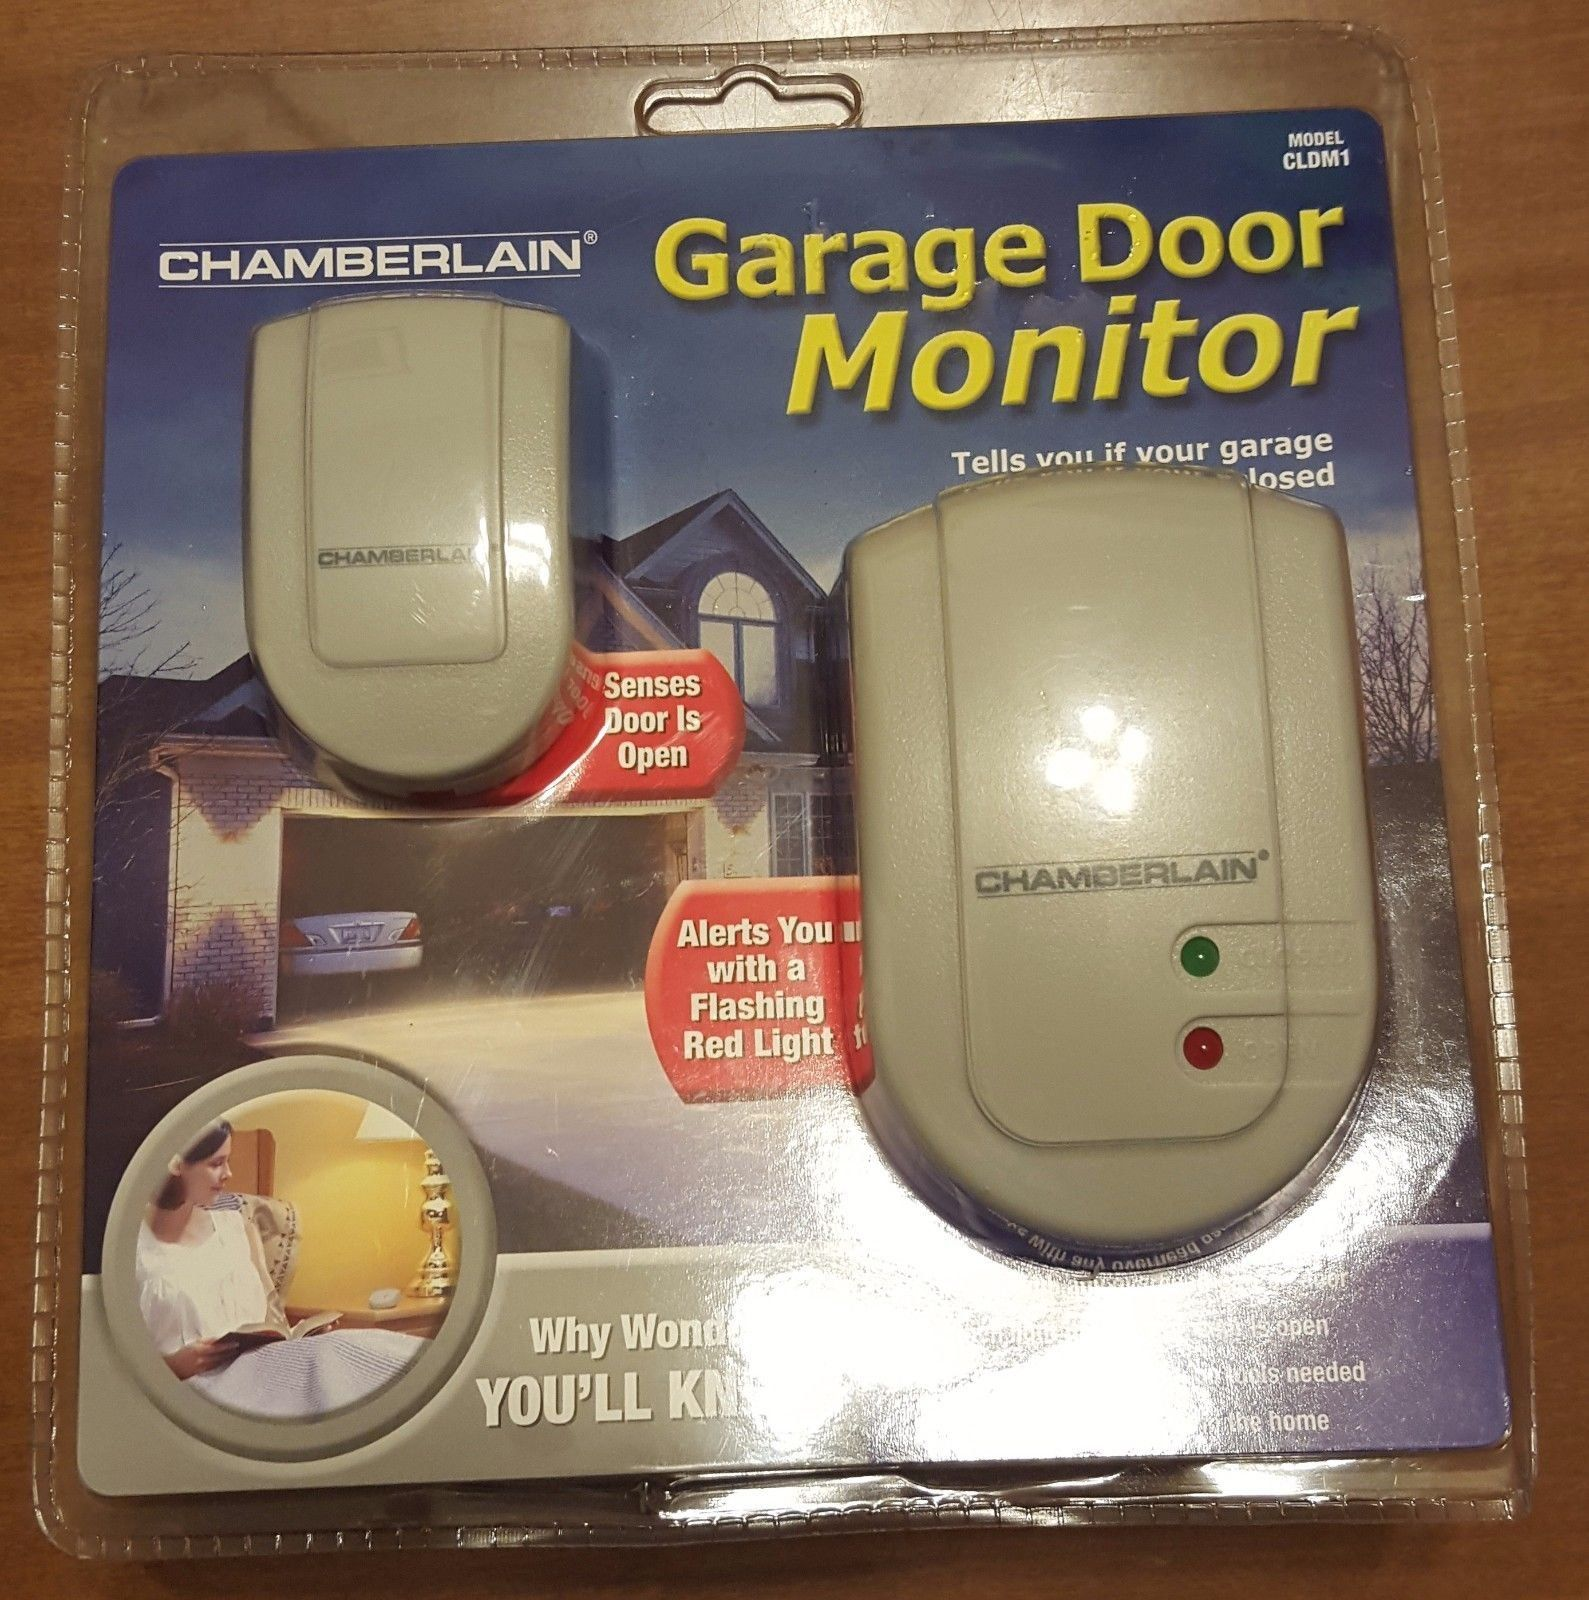 ful tension remote the doors how to model liftmaster replacement inspiration of cart opener light duty delightful butt size open operator commercial jackshaft monitor cable garage install add on door full